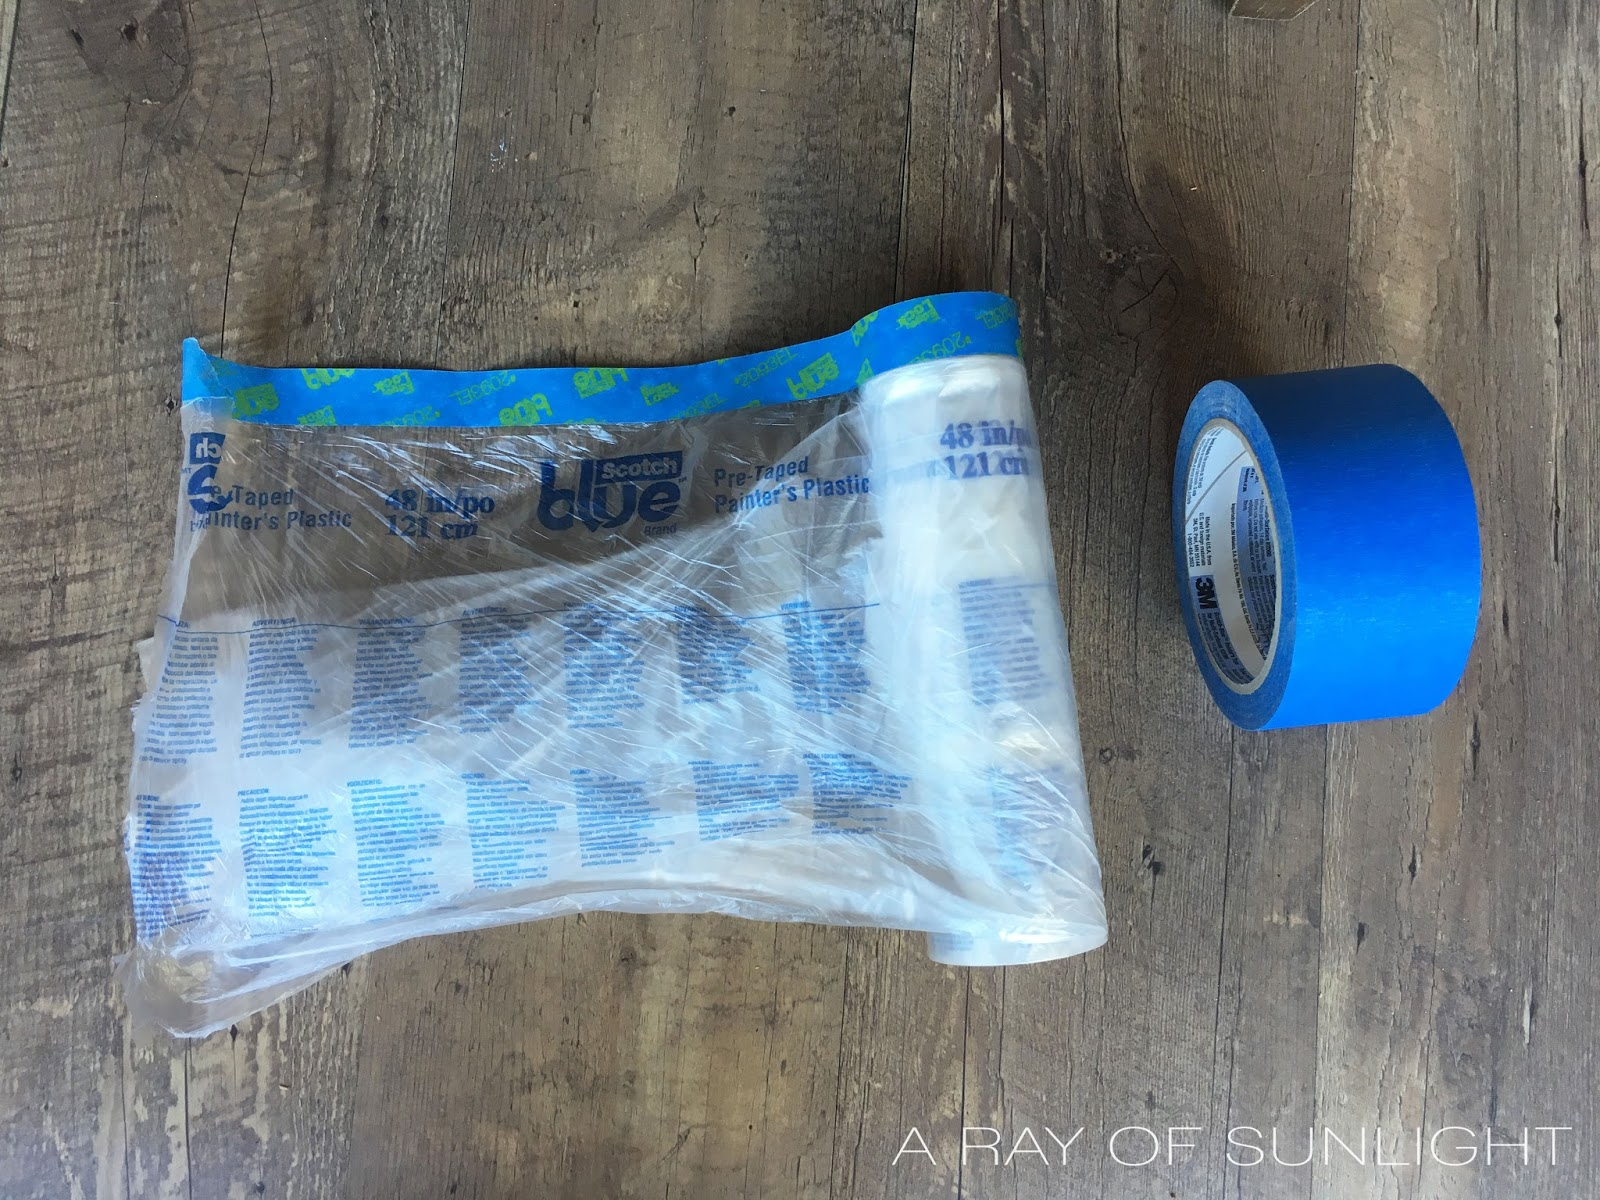 How to prep furniture for paint by taping off your furniture for a paint sprayer. This is the best way to spray your furniture without getting overspray inside the drawers and cabinet spaces. How to Use a Paint Sprayer on Furniture by A Ray of Sunlight